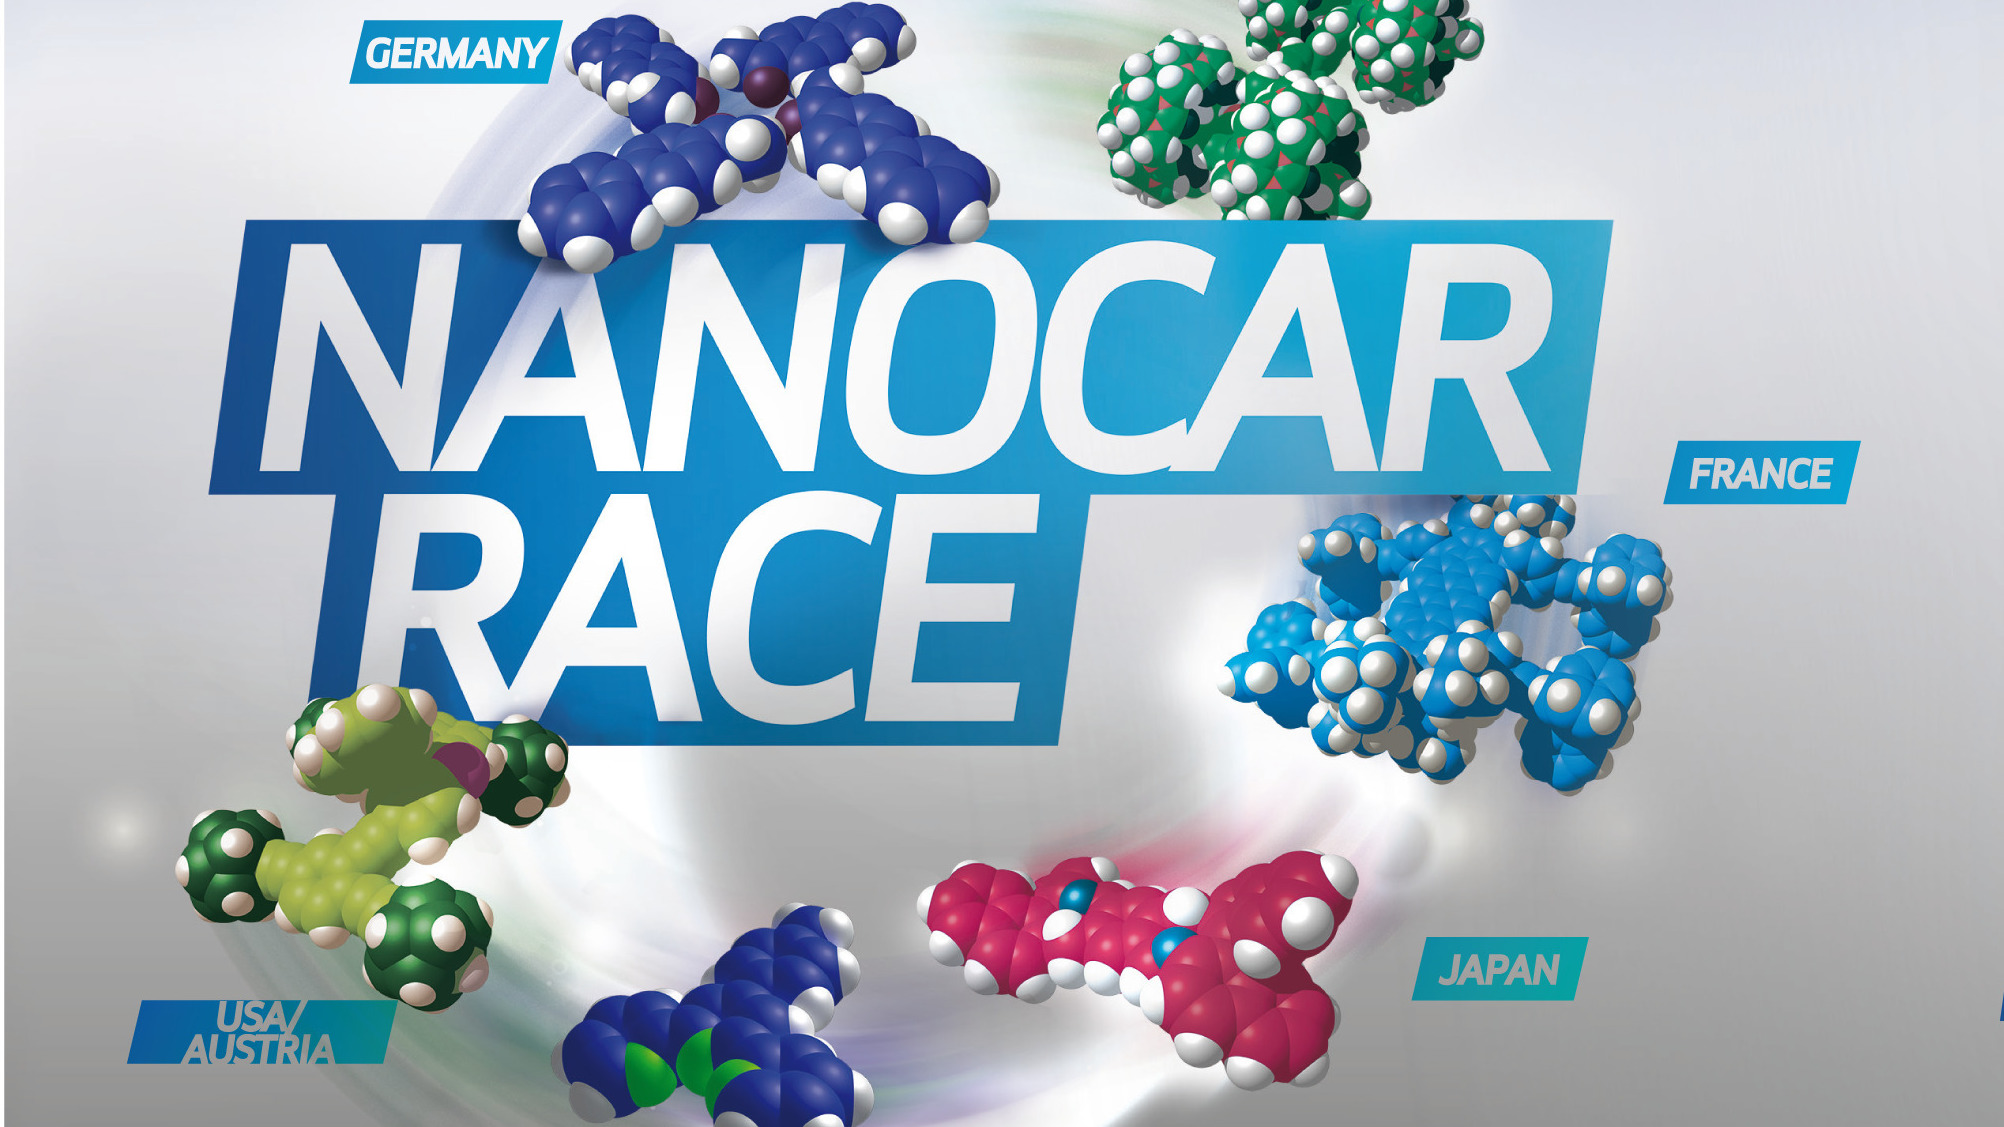 """The Nanocar Race, which happened over the weekend at Le centre national de la recherché scientific in Toulouse, France, was billed as the """"first-ever race of molecule-cars."""""""